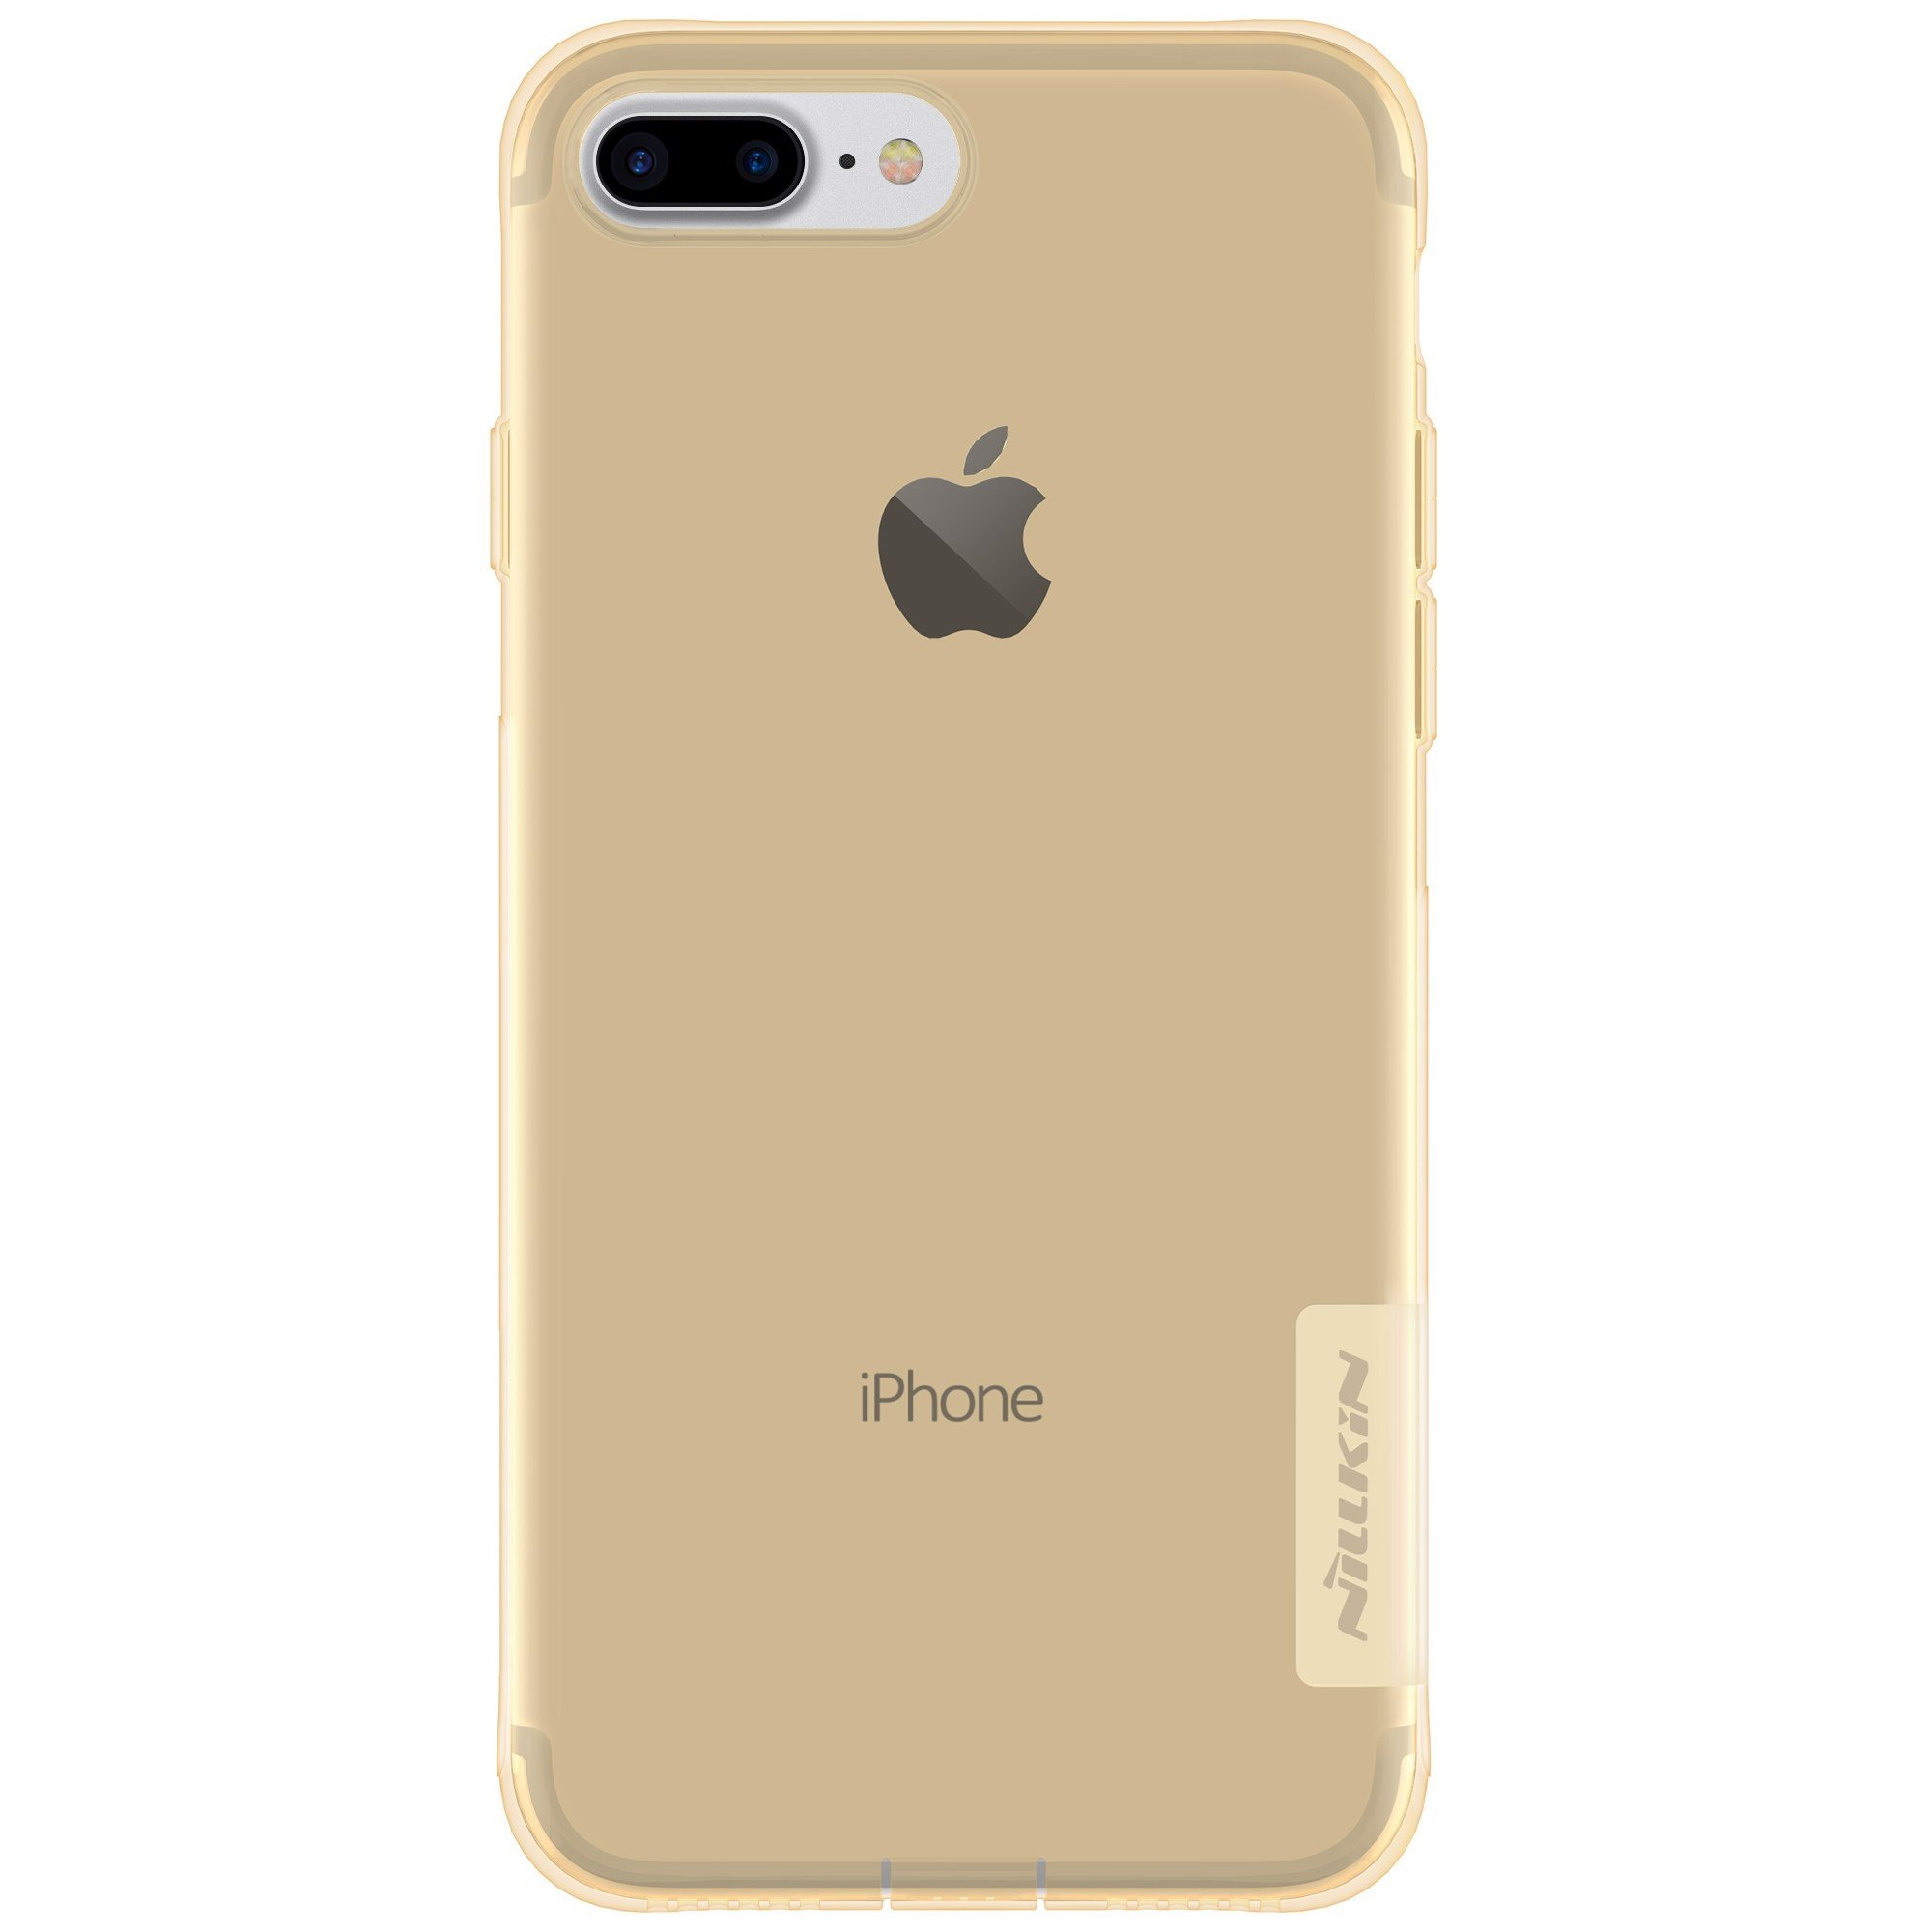 Ốp Lưng IPhone 7 Plus Nillkin TPU Case Dẻo - Màu Gold